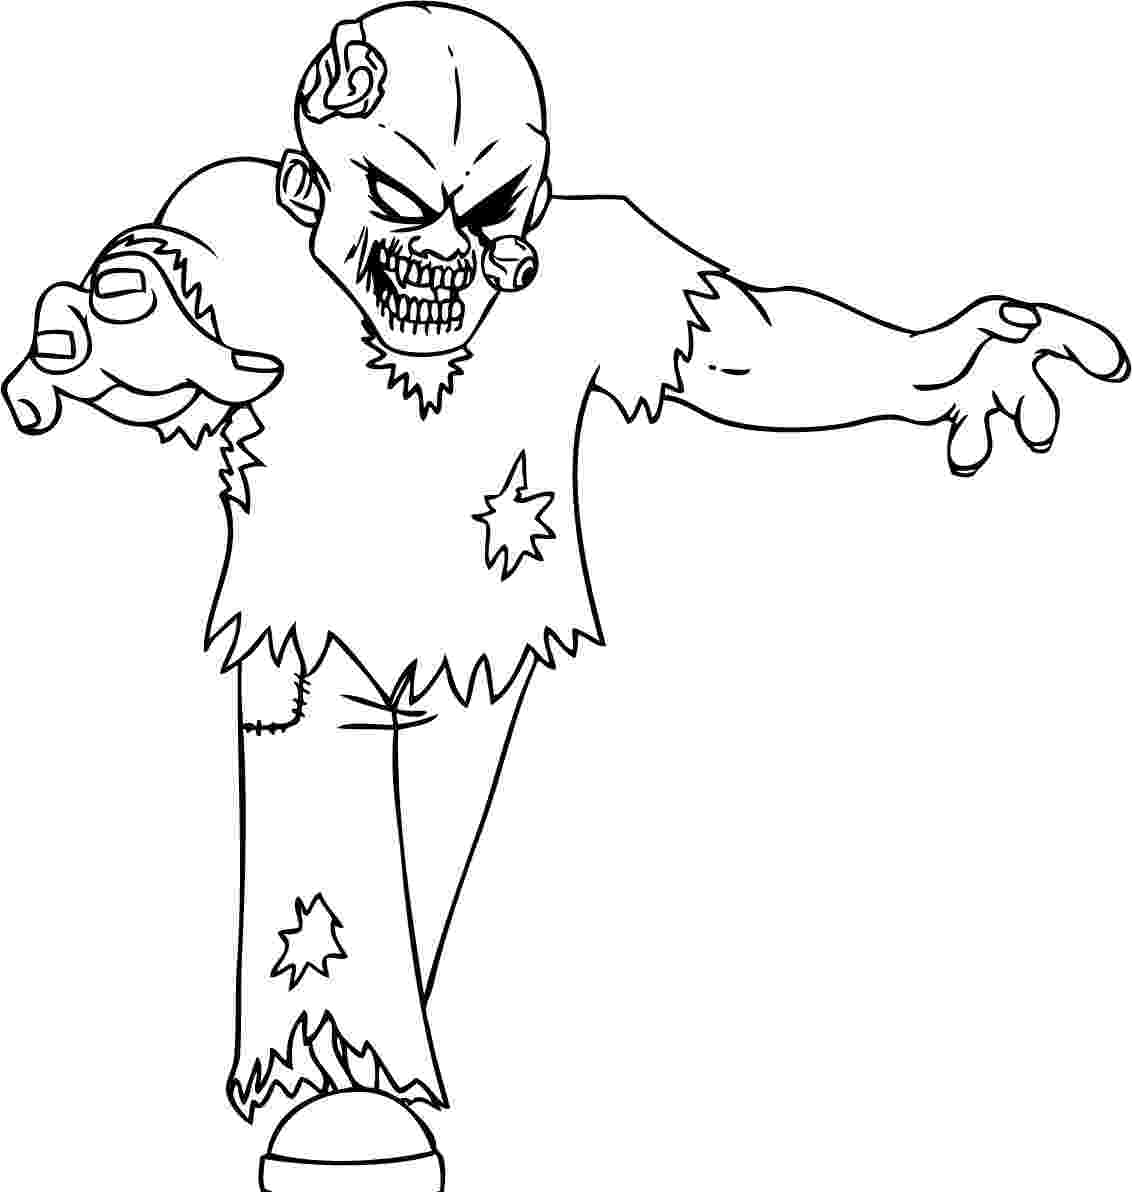 zombies coloring pages plants vs zombies coloring pages coloring home zombies pages coloring